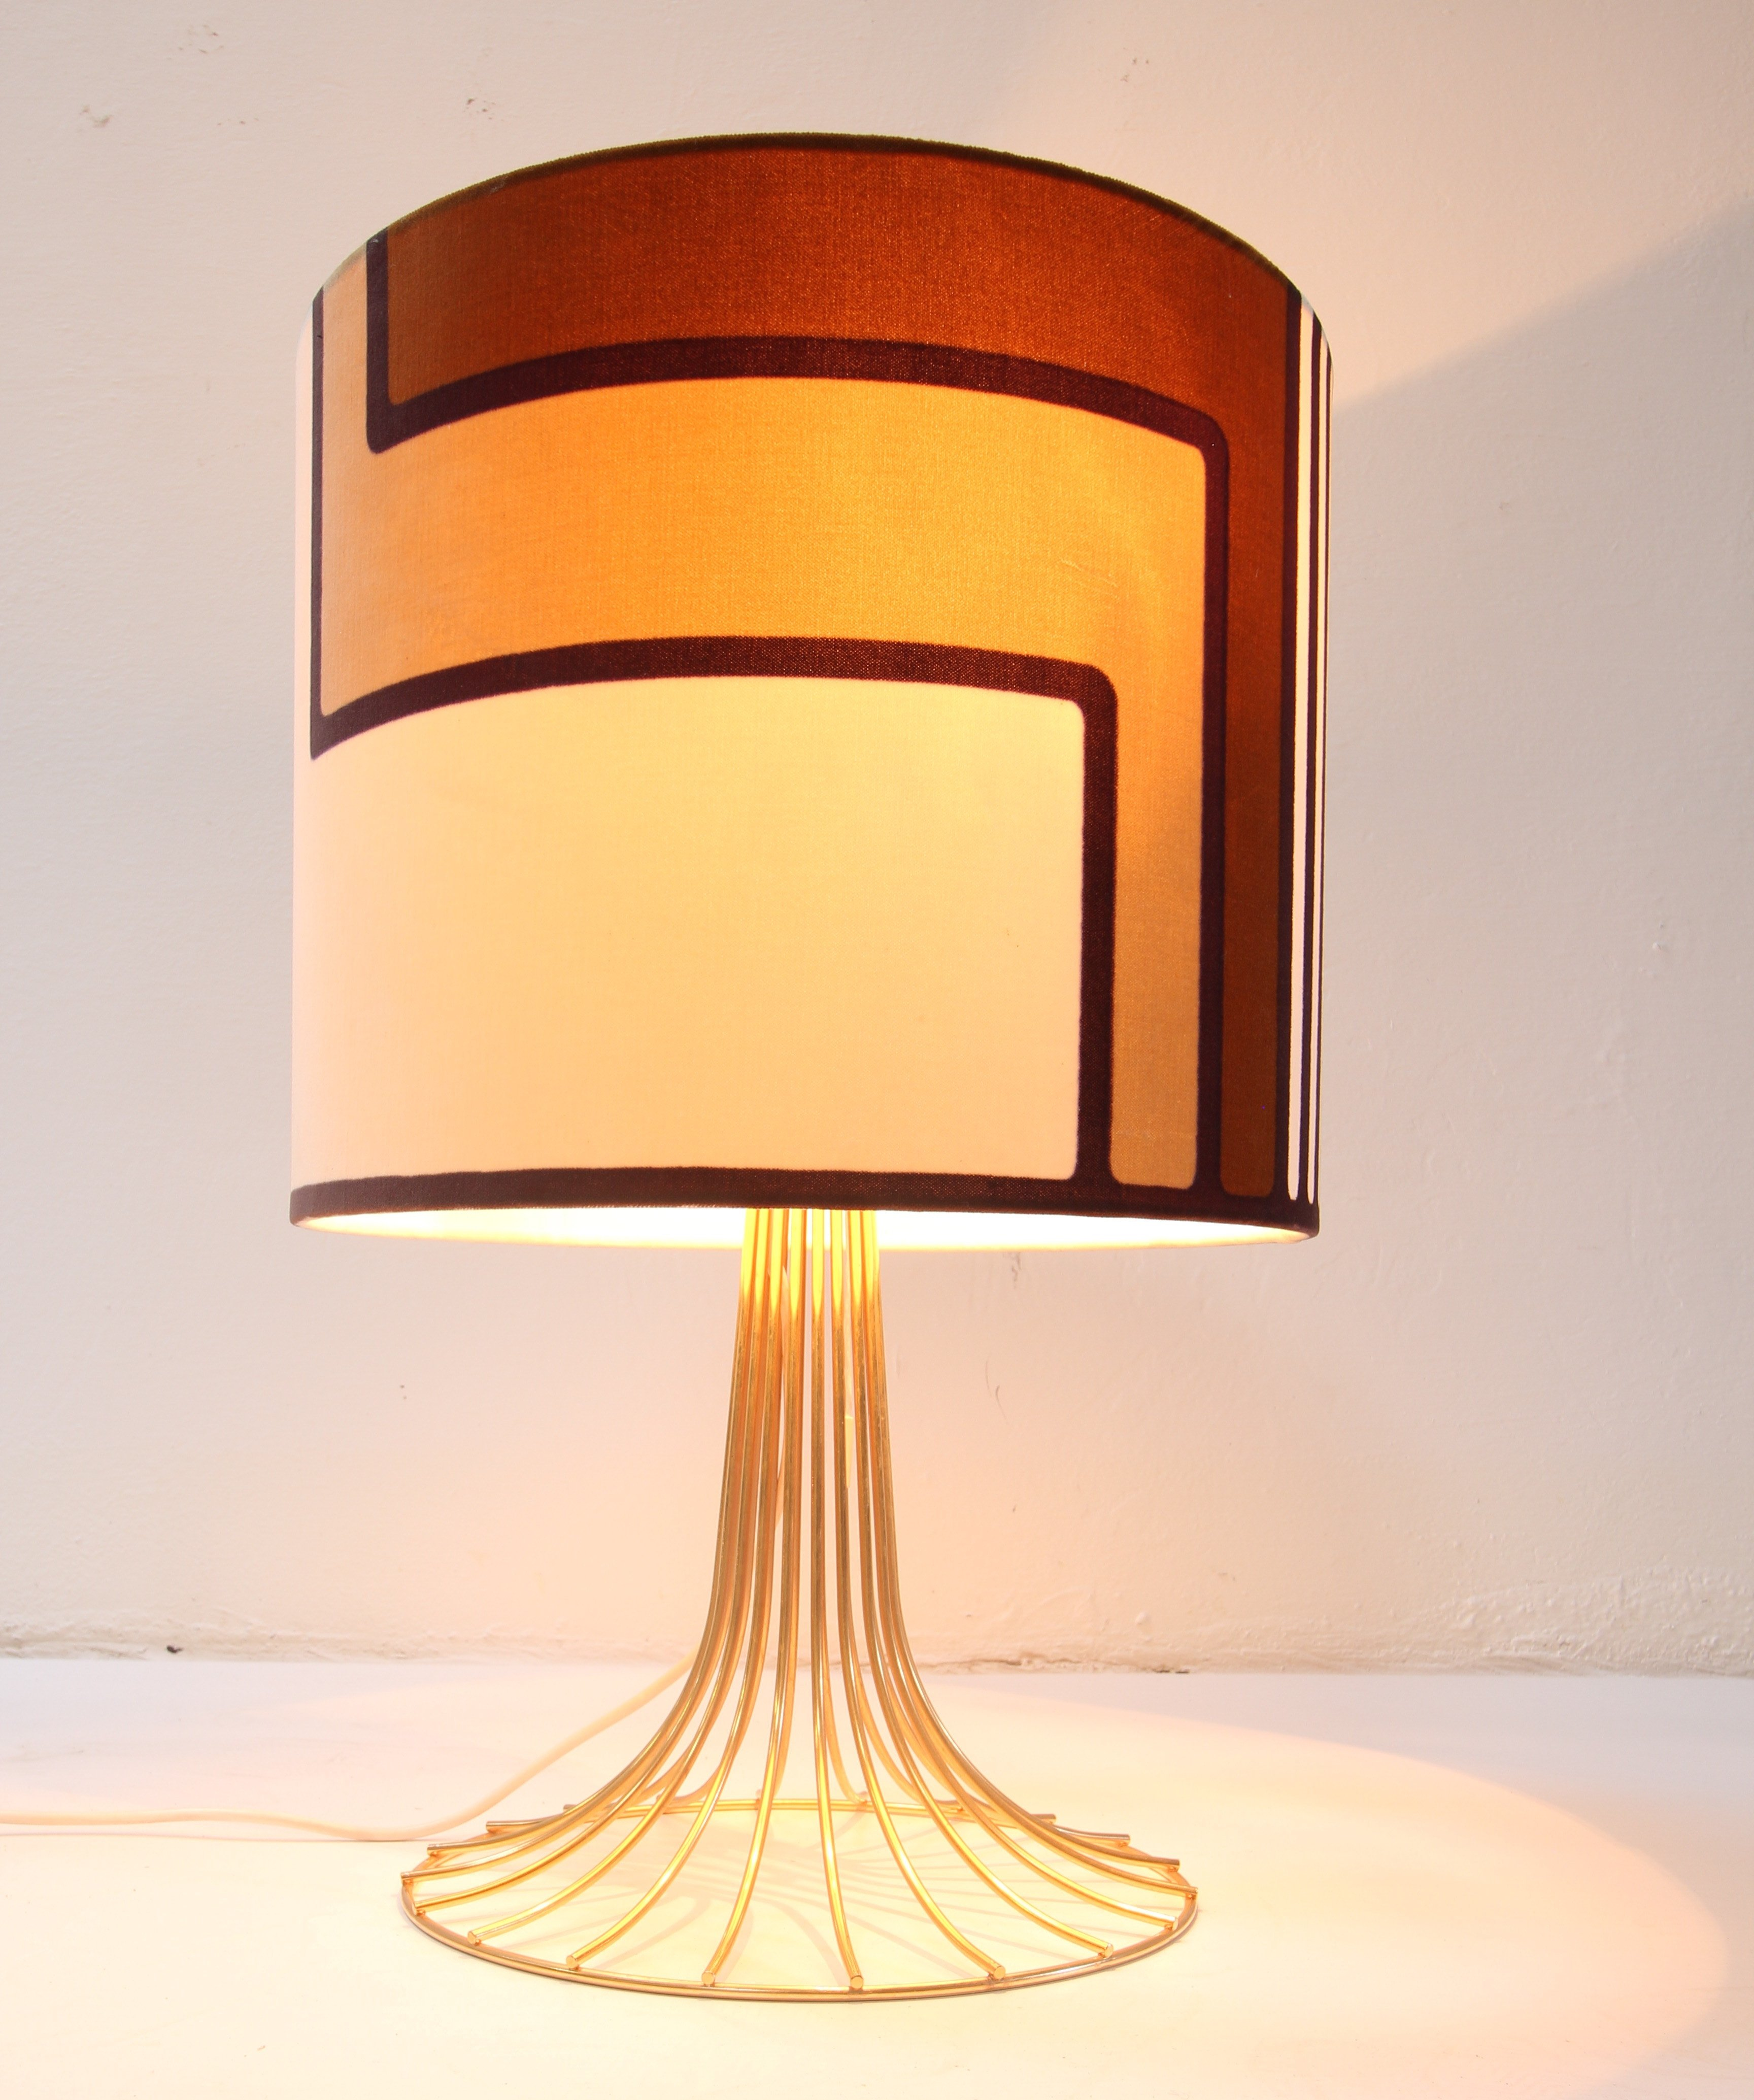 Rare gold wire lamp desk lamp by Verner Panton for Fritz Hansen ...